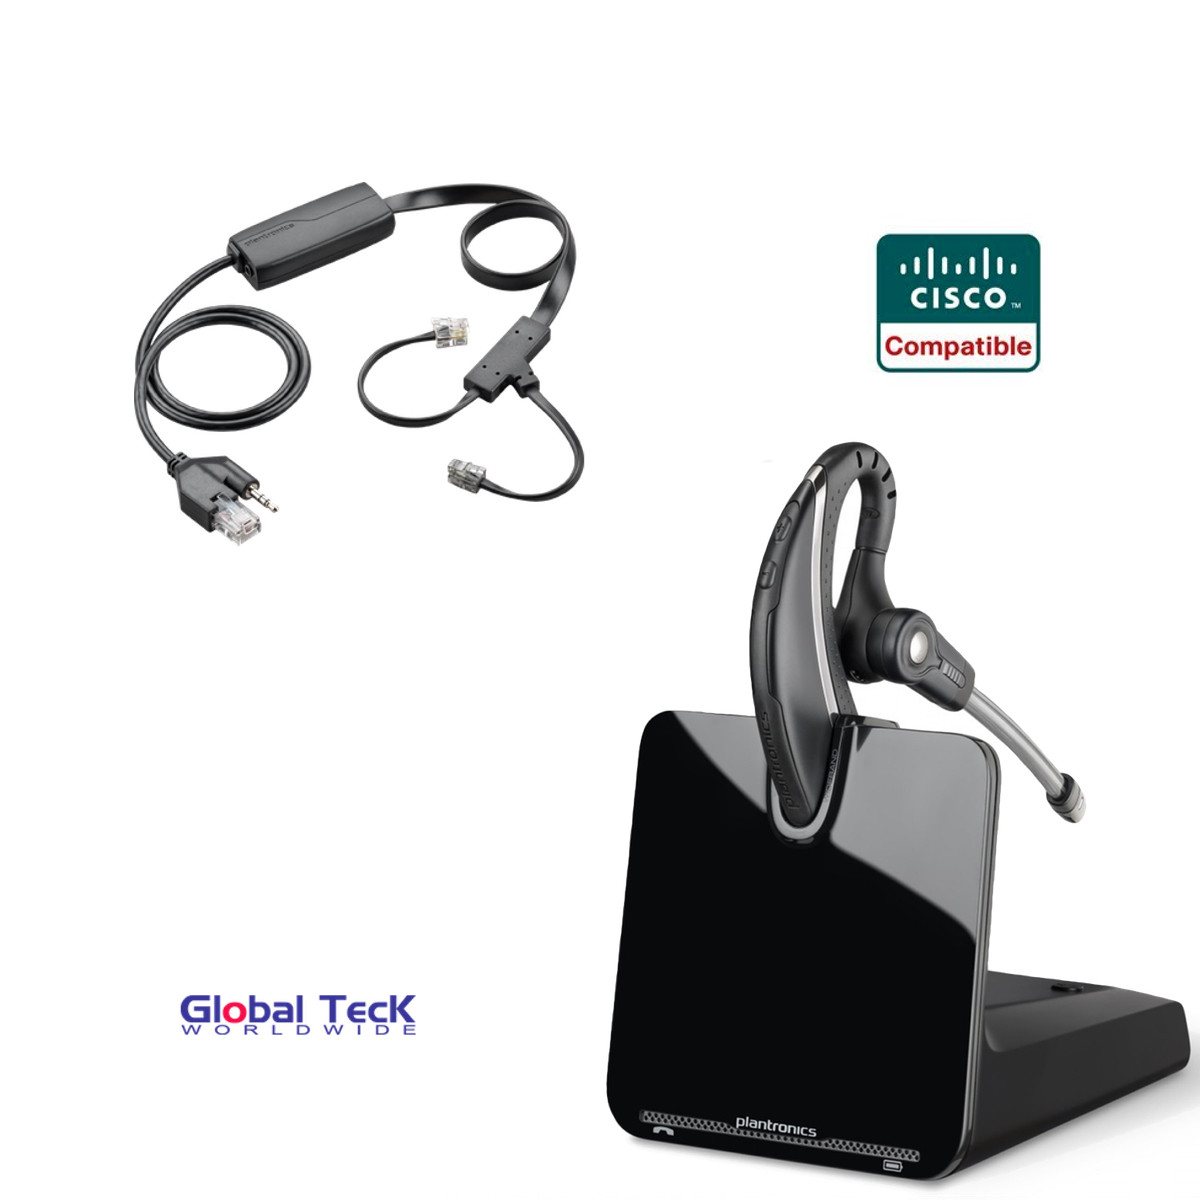 How To Connect Plantronics Bluetooth Headset To Cisco Phone